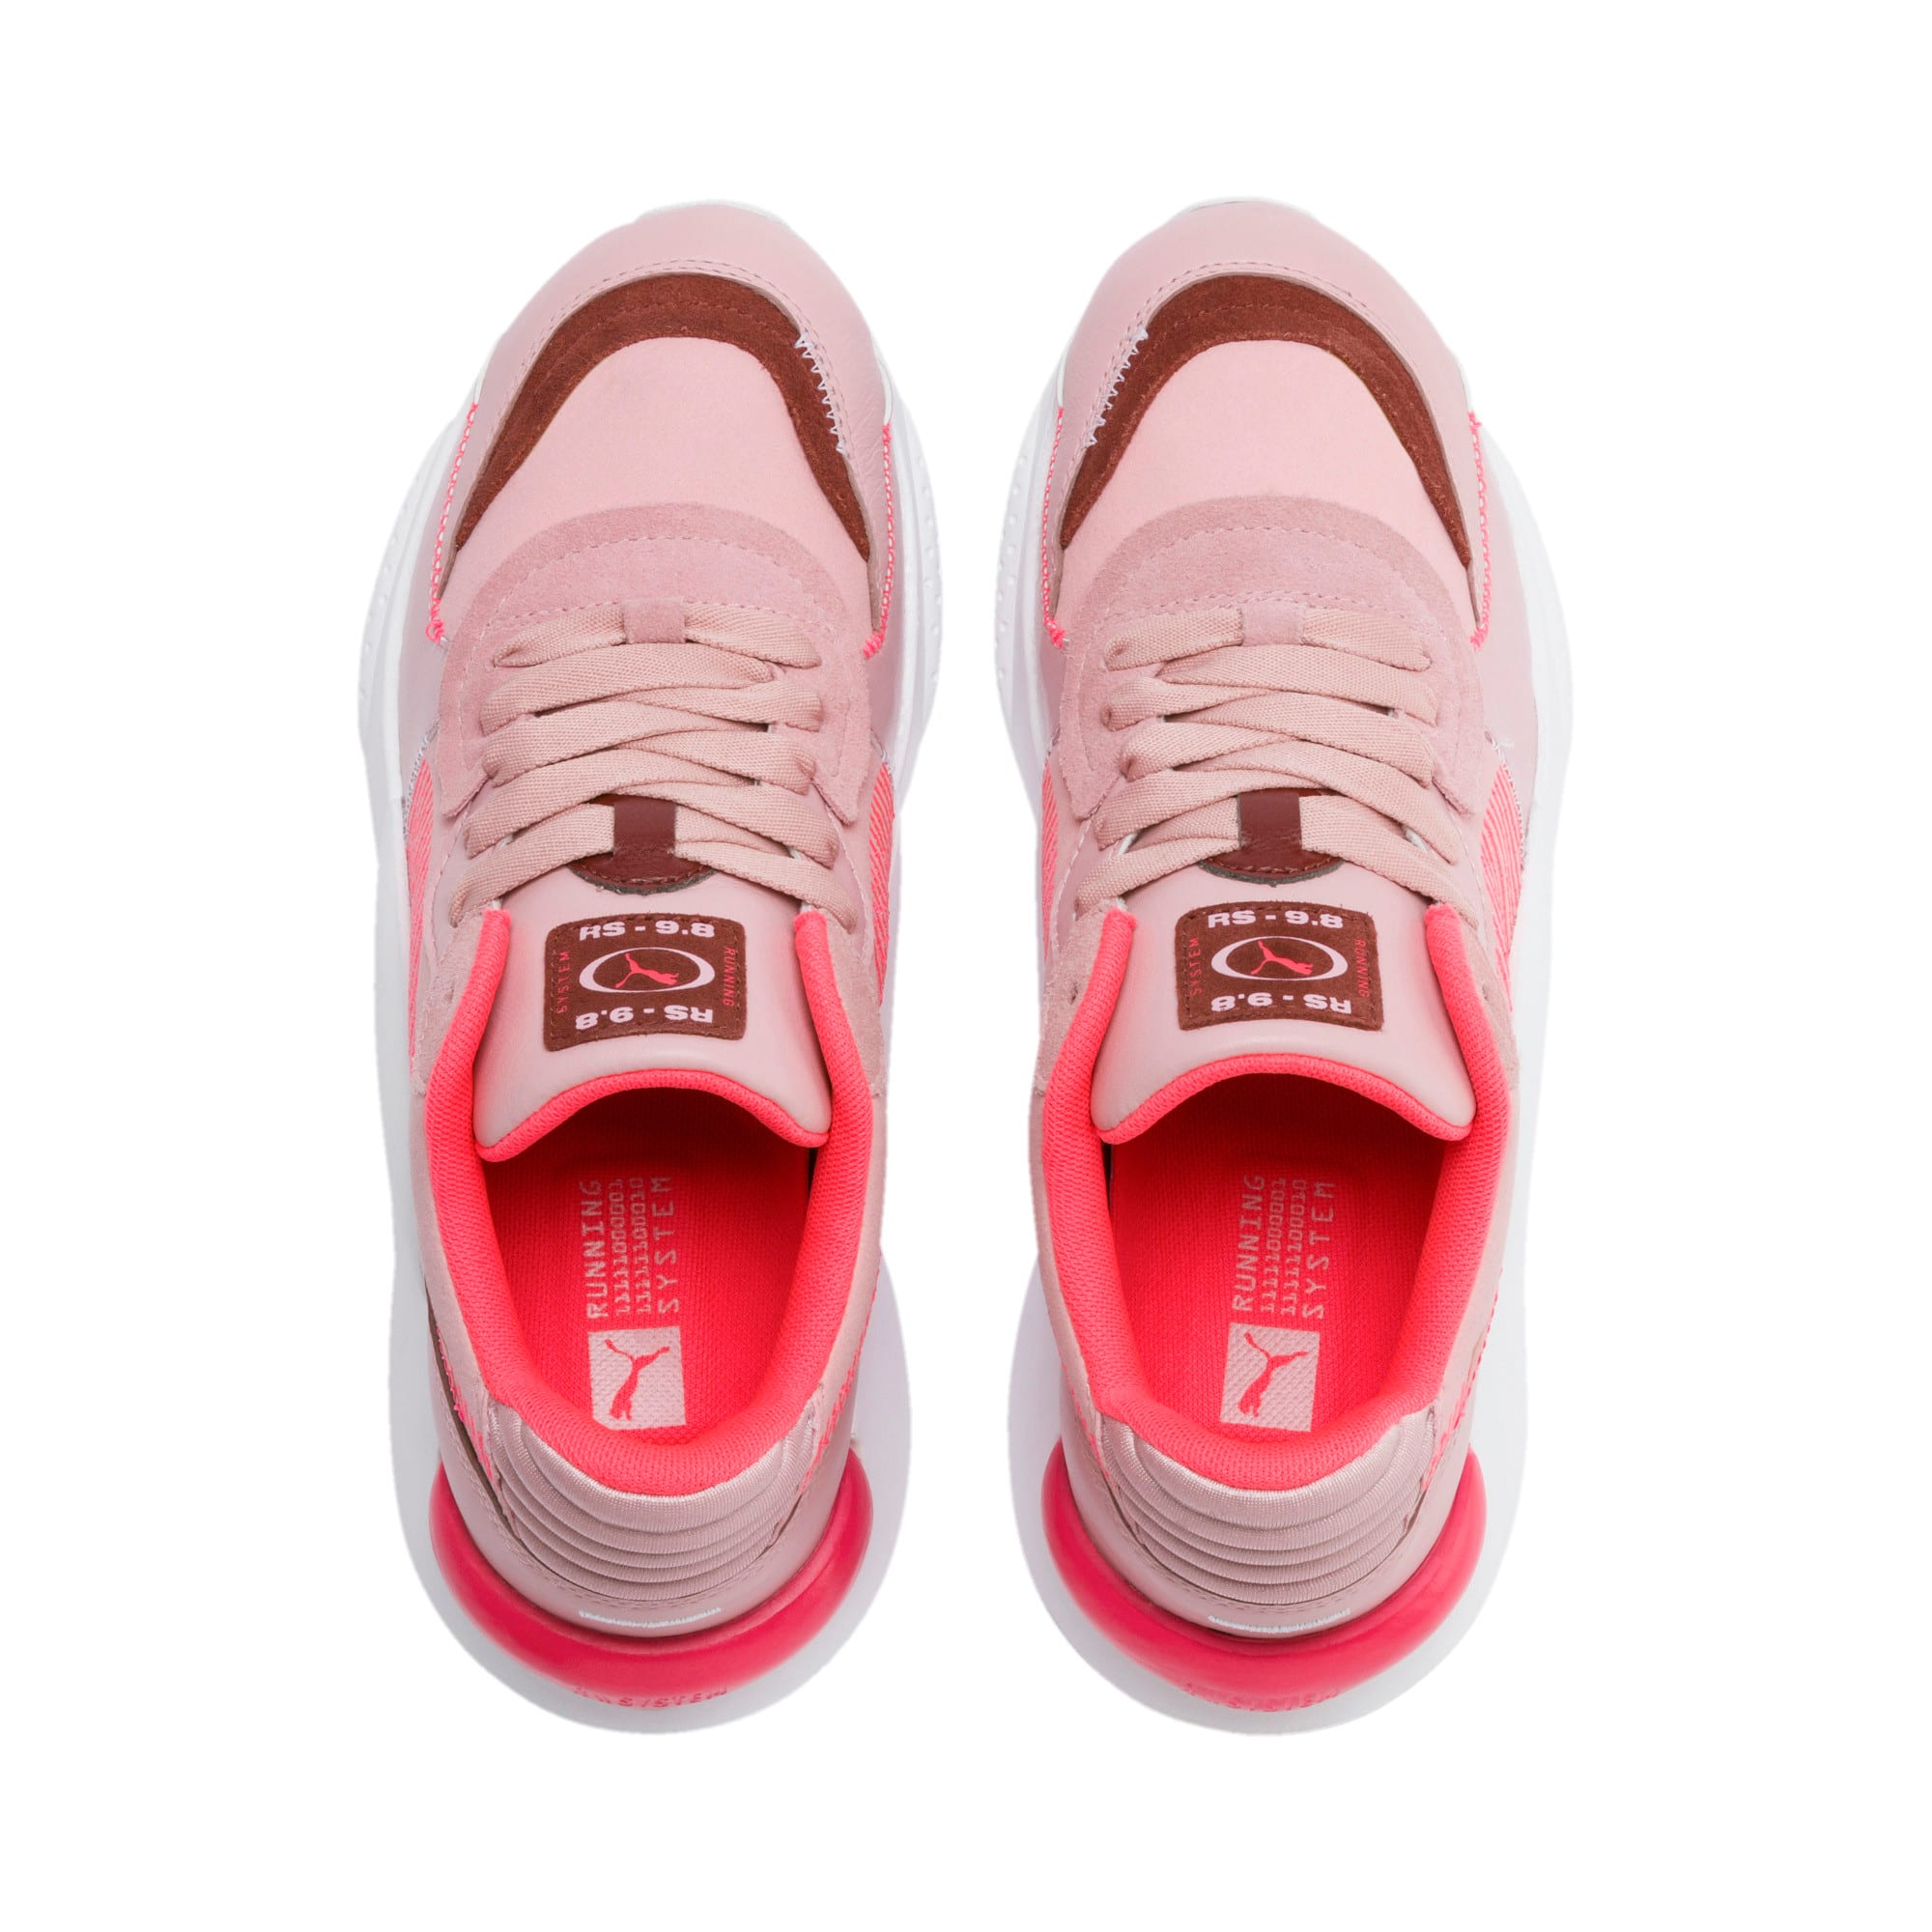 Thumbnail 4 of RS 9.8 Proto Women's Trainers, Bridal Rose, medium-IND